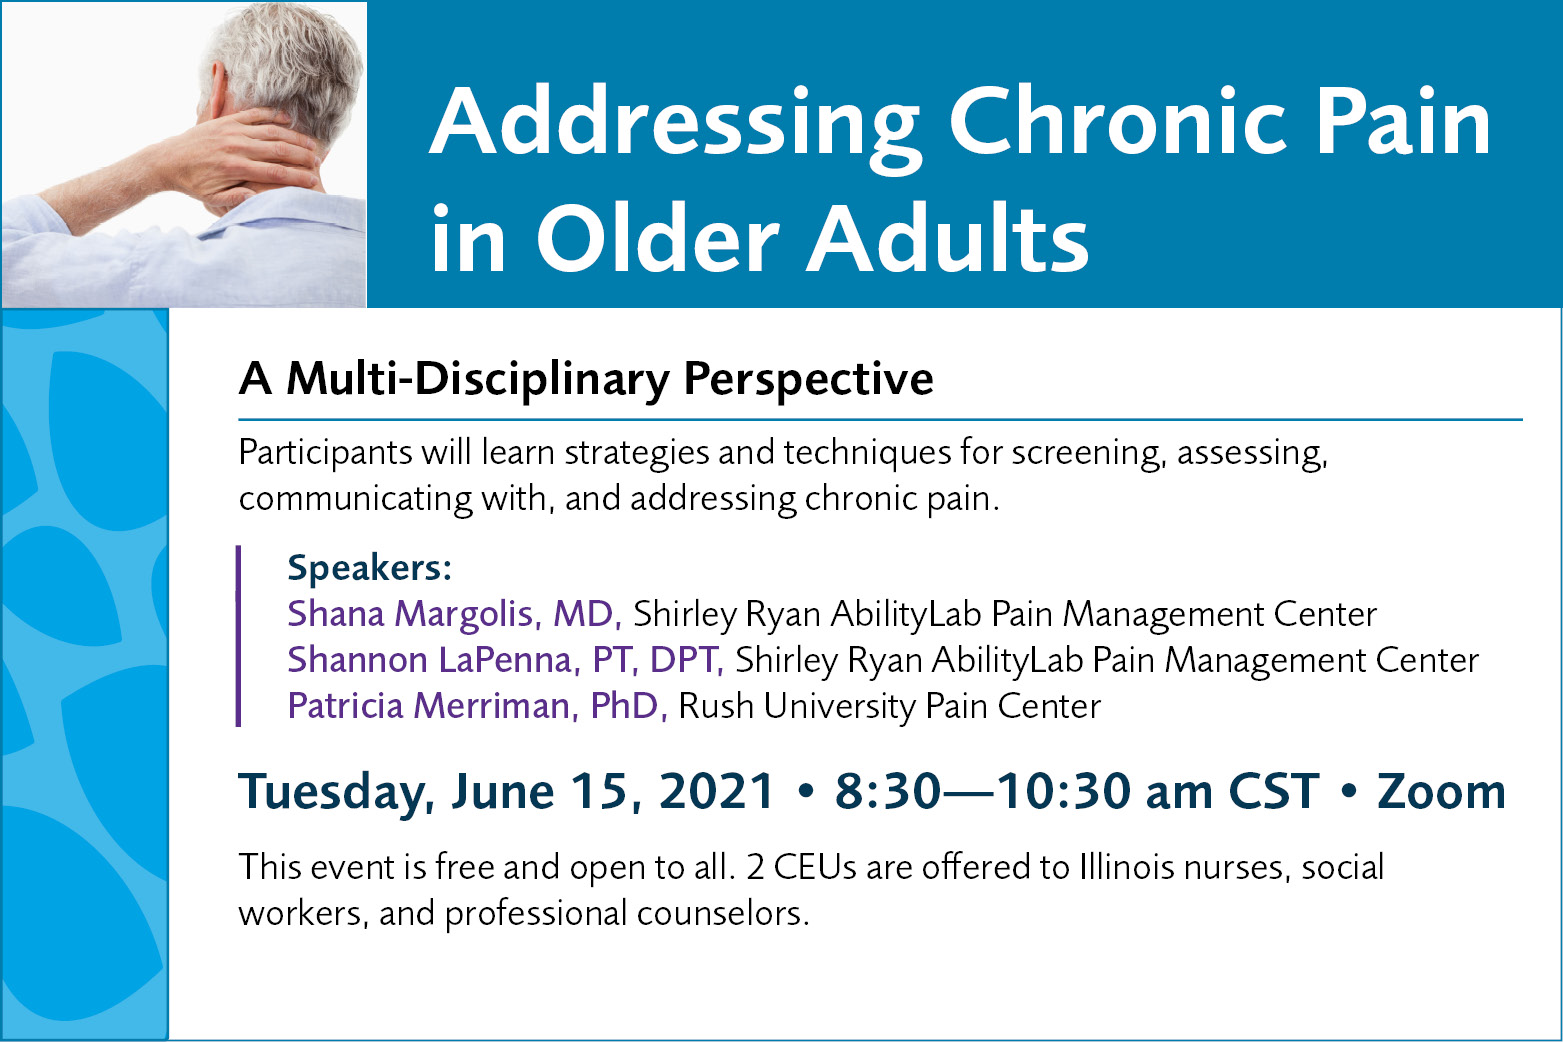 Addressing Chronic Pain in Older Adults